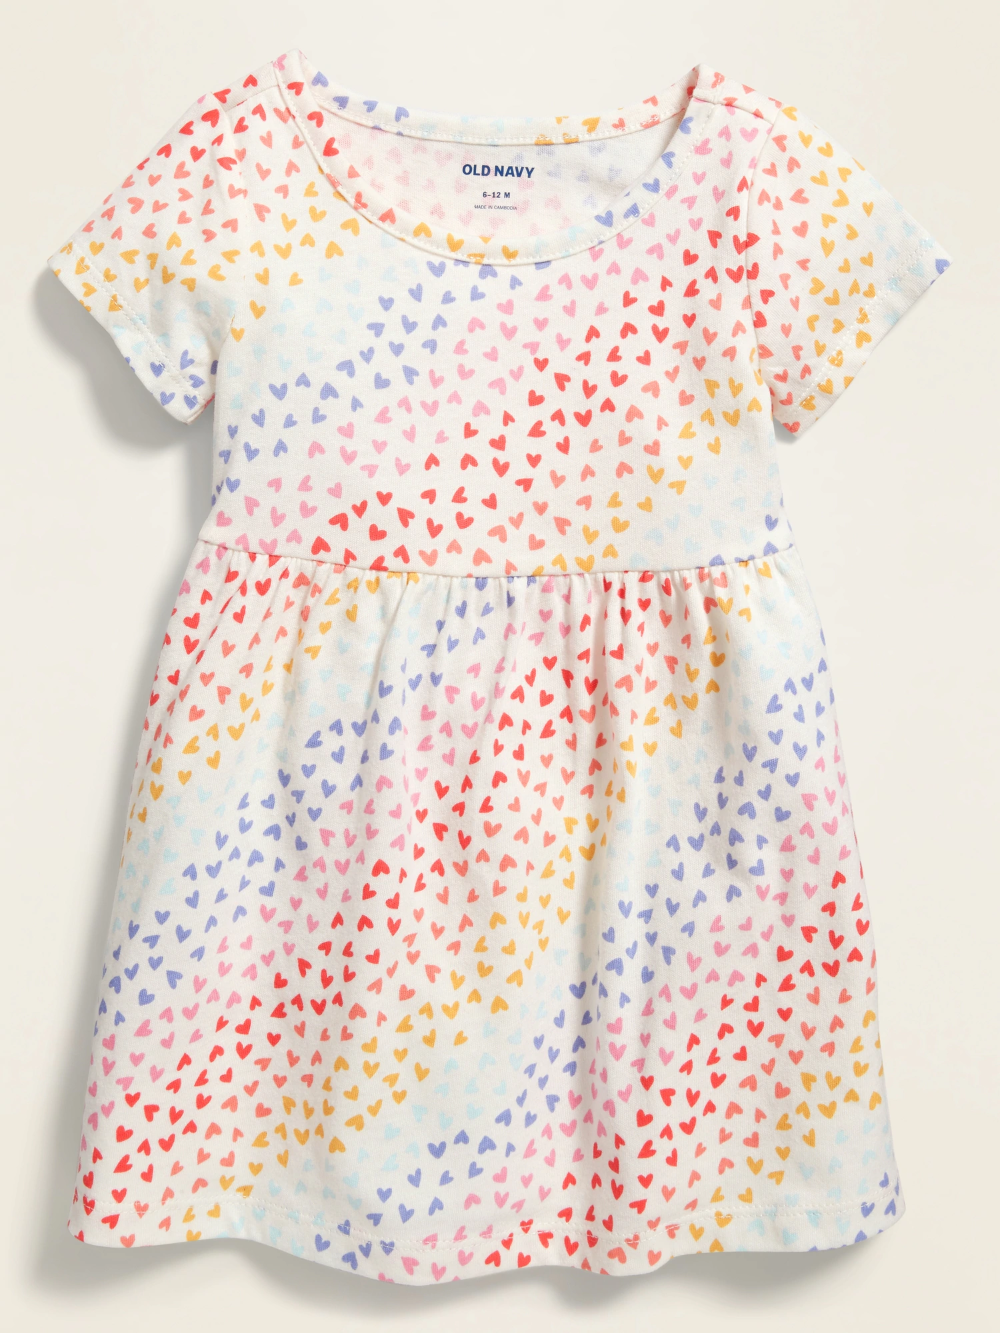 Empire-Waist Jersey Dress for Baby /& Toddler Girls Old Navy